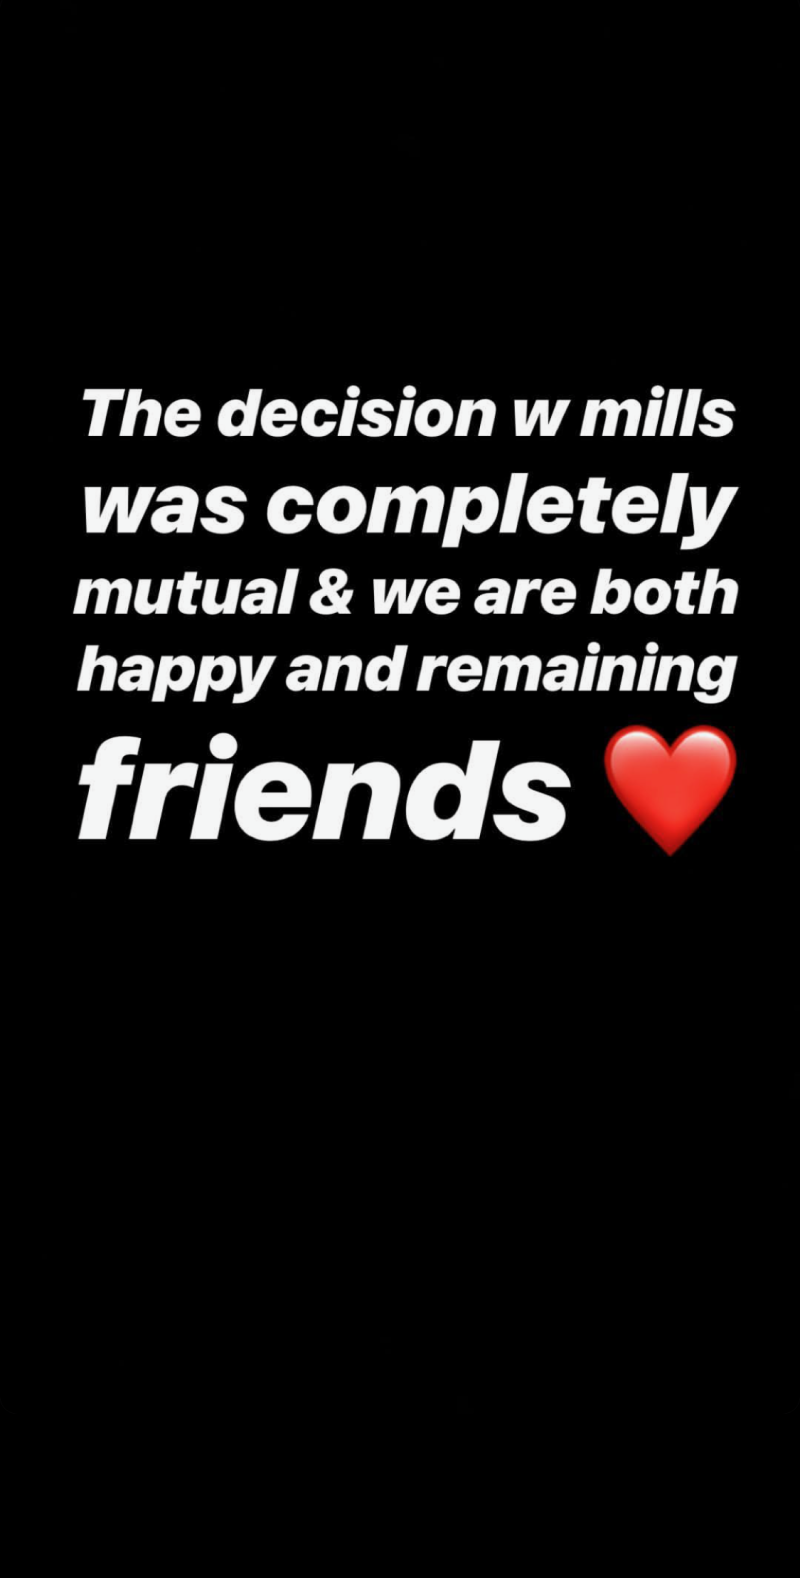 Jacob Sartorius posted a similar statement about the split with Millie Bobby Brown on Instagram stories [Photo: Instagram]